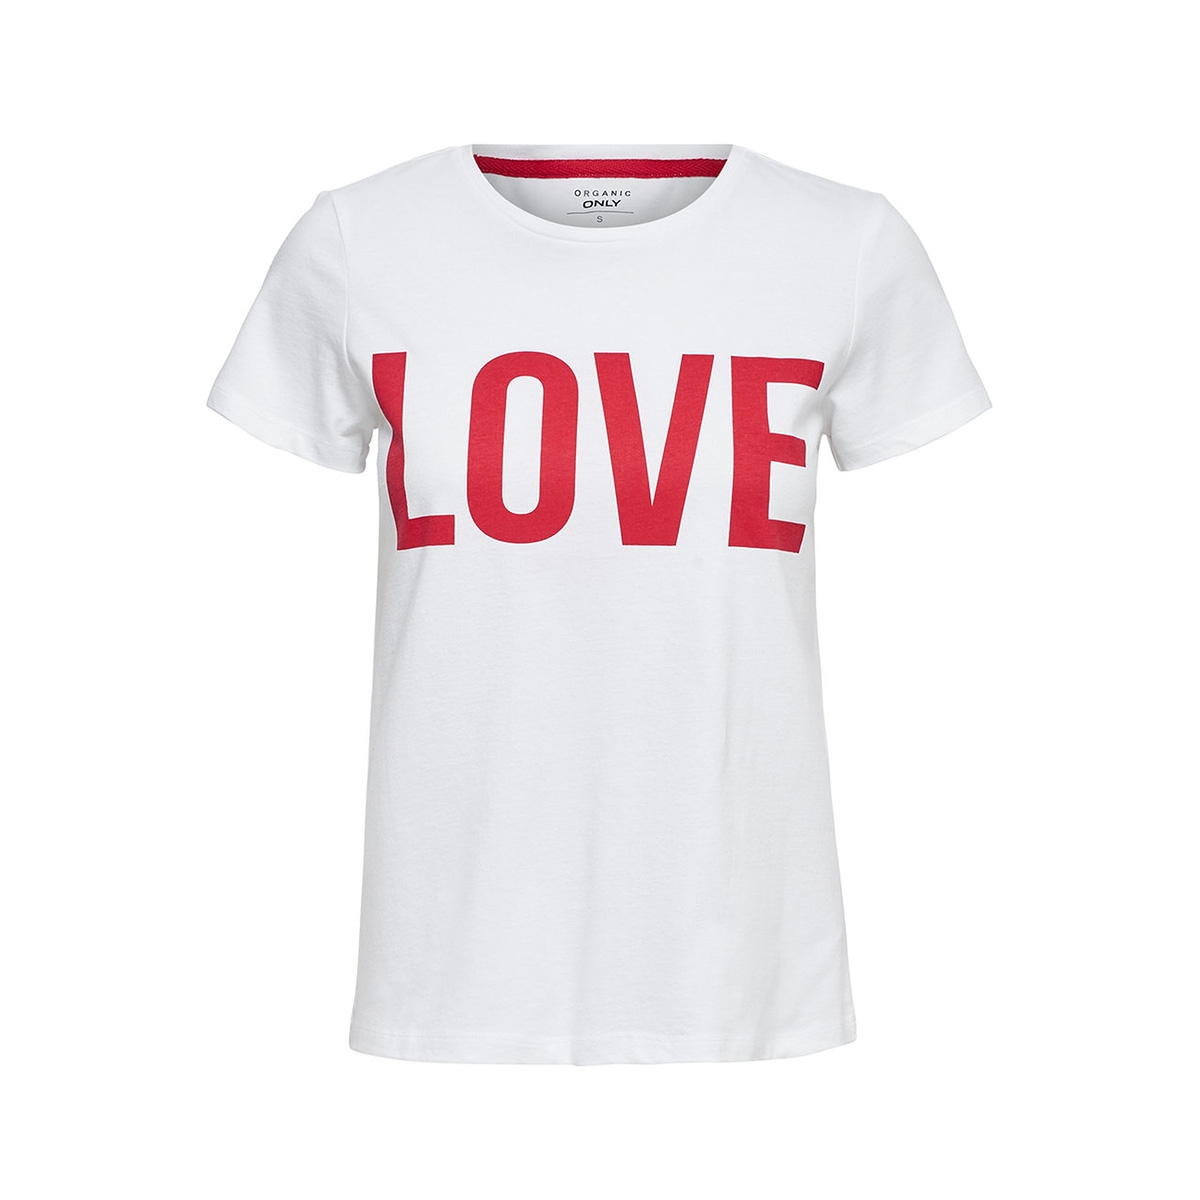 onlriva ss tee noos 15152829 only t-shirt bright white/love w/hig